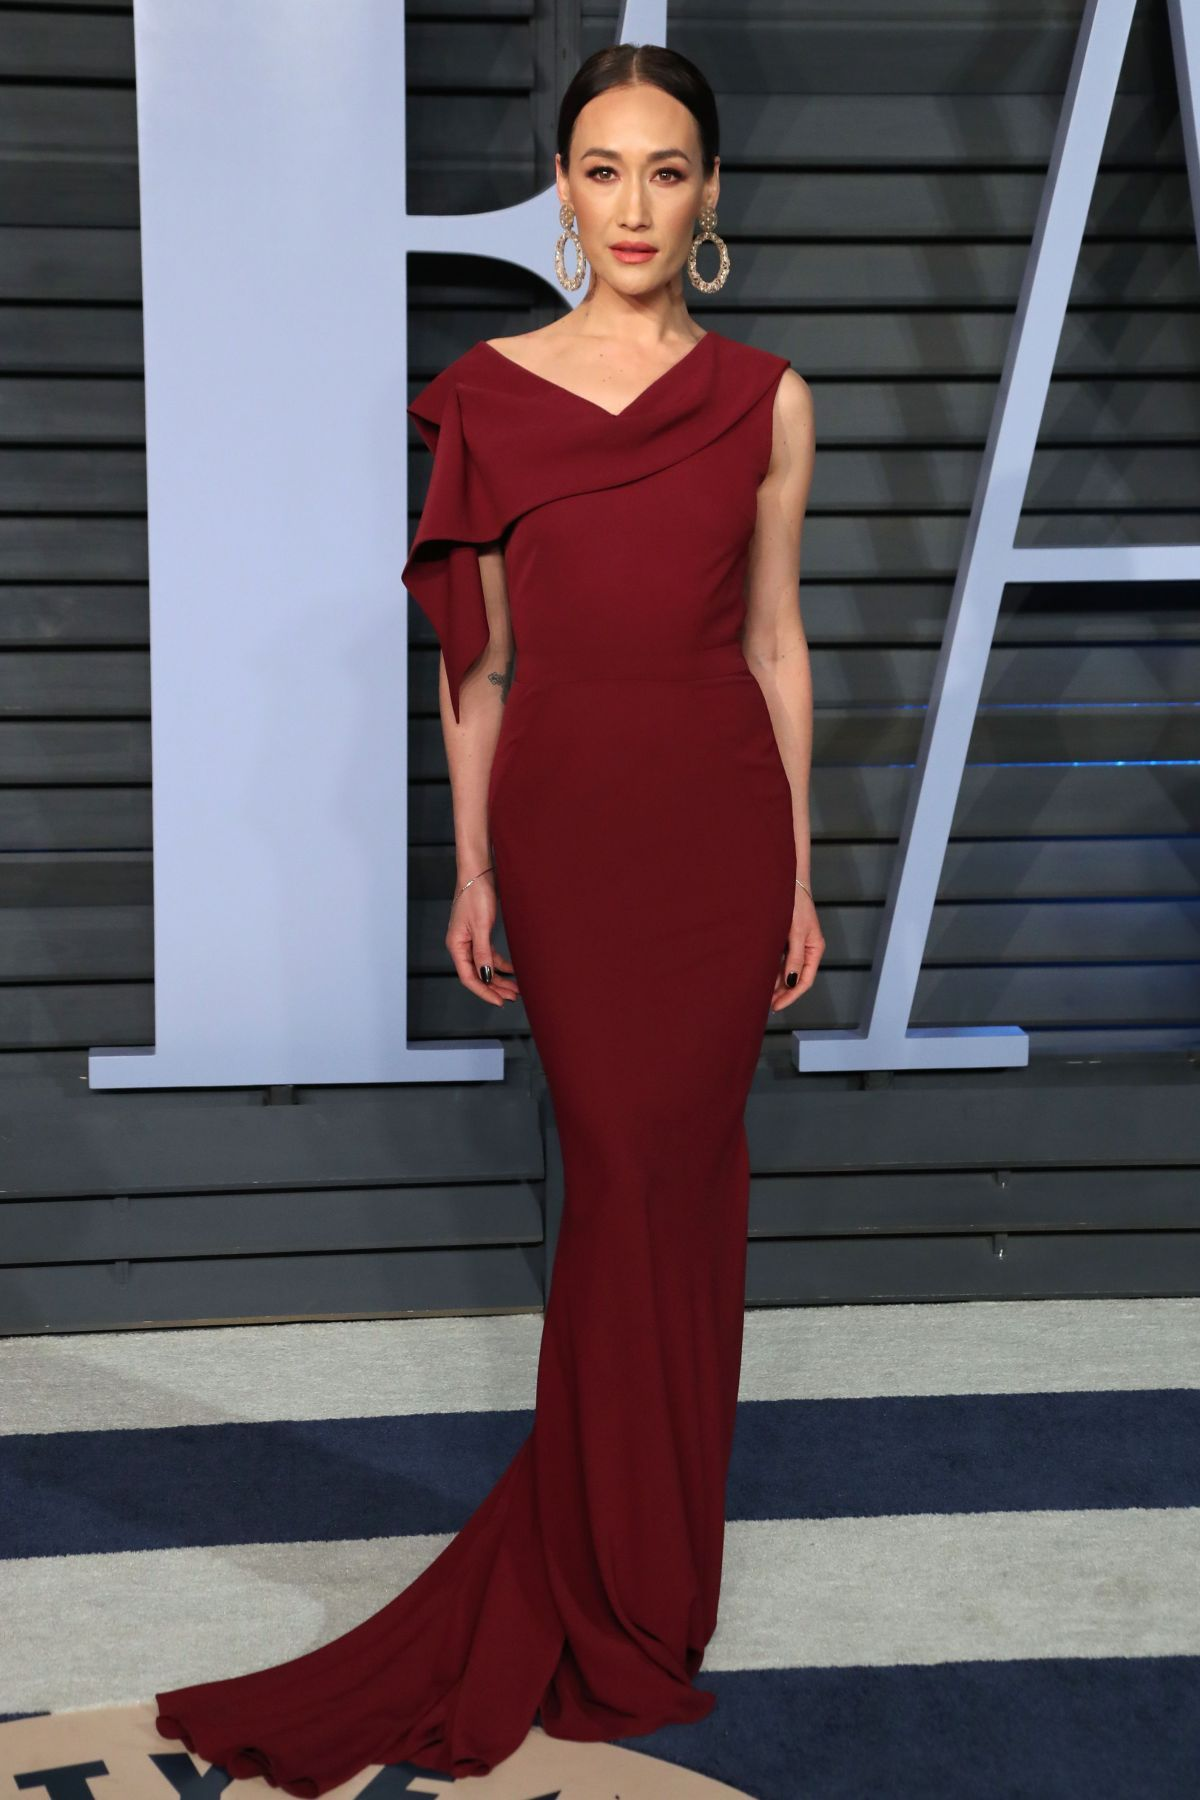 Alicia Bogo Desnuda maggie q at the 2018 vanity fair oscars party #2018 #party